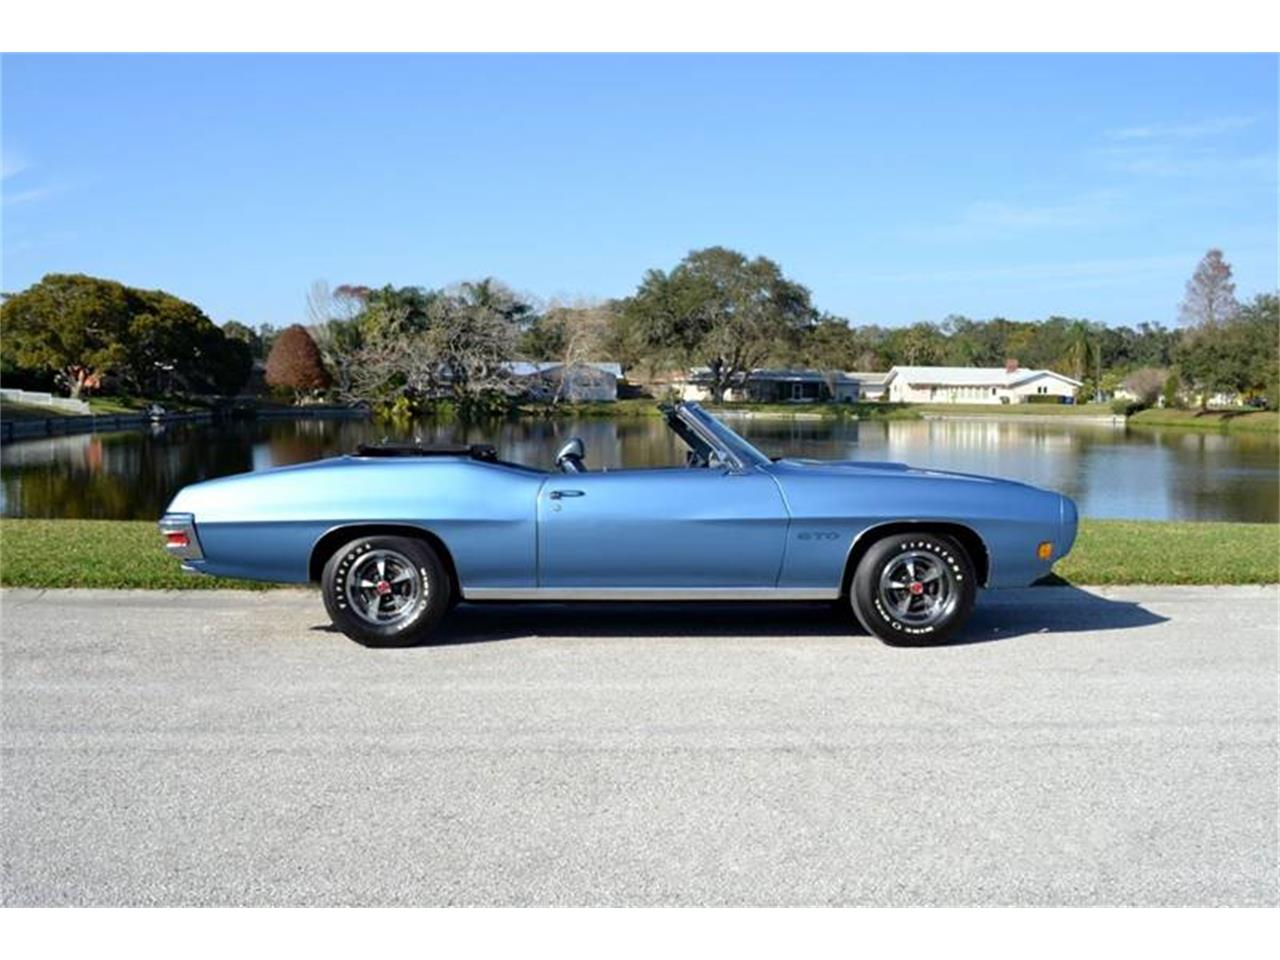 Large Picture of 1970 Pontiac GTO located in Florida Offered by PJ's Auto World - PH2Q